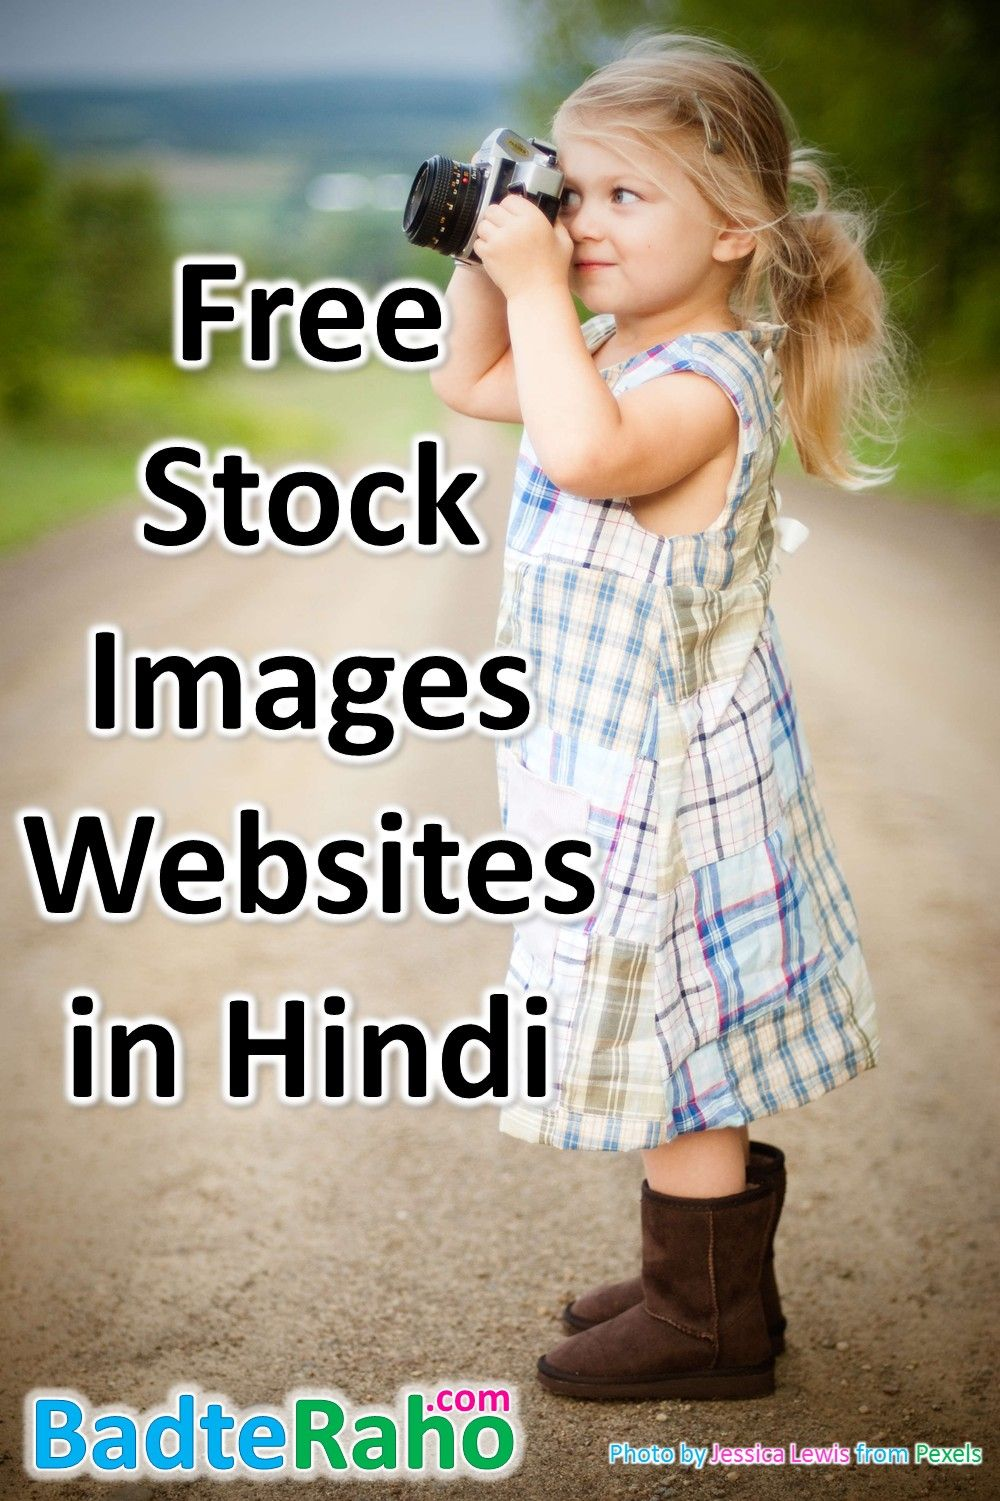 free-stock-images-websites-pinterest